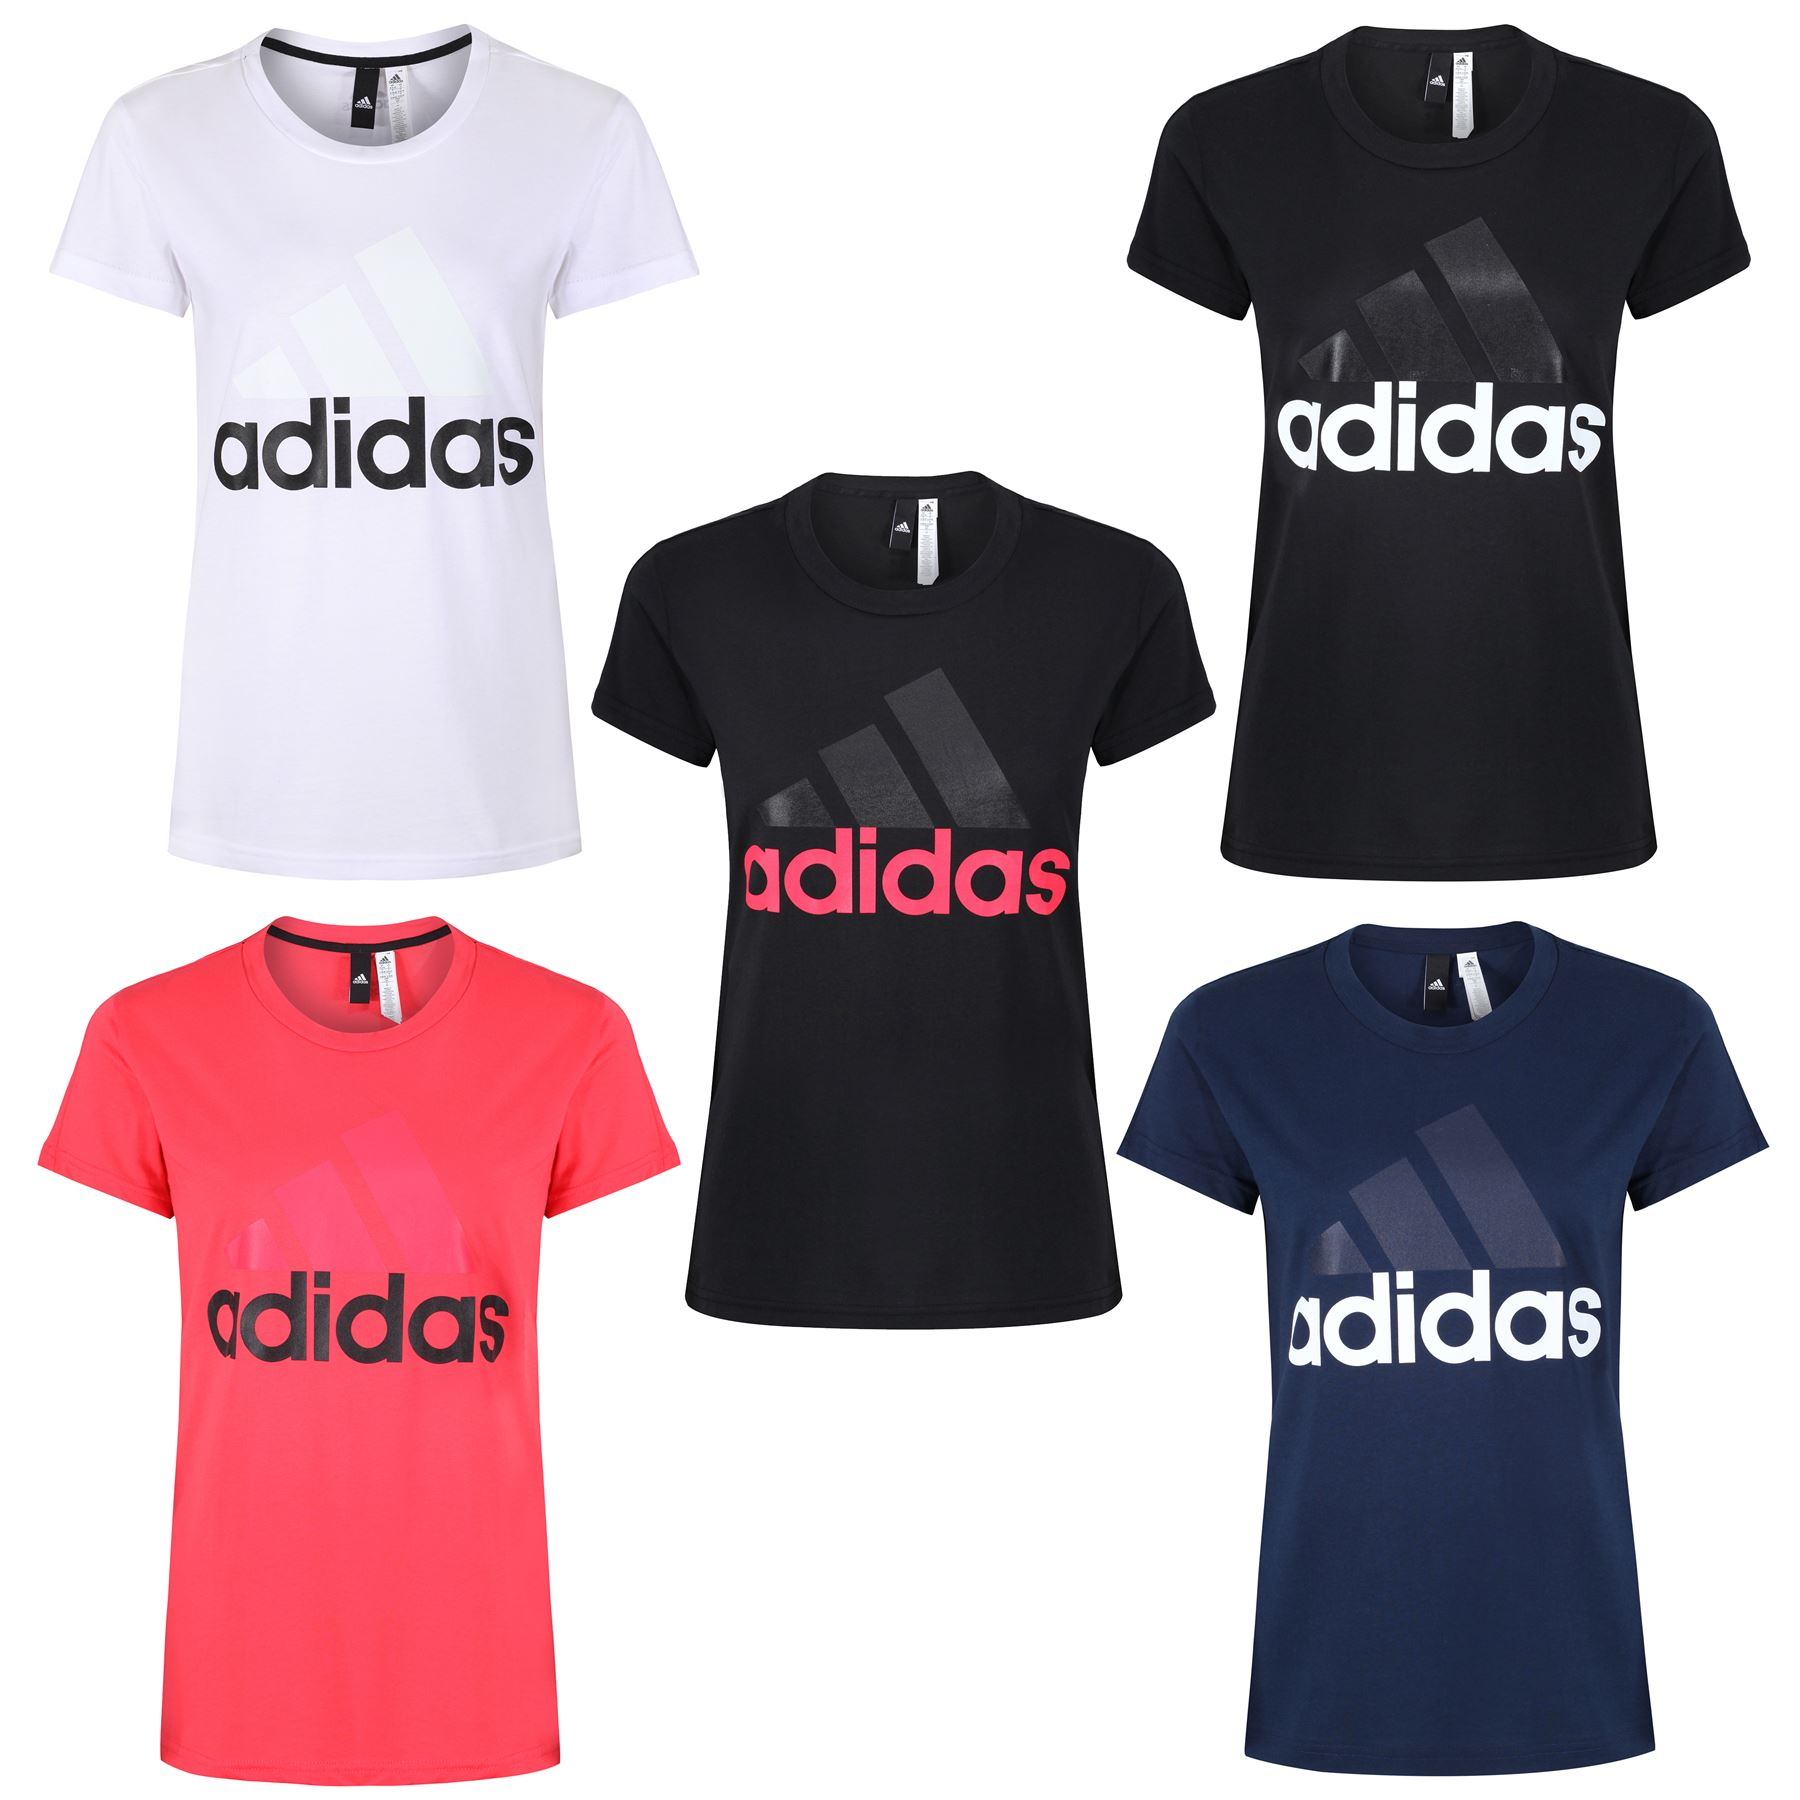 0bfc89be Details about adidas ESSENTIALS LINEAR T SHIRT TEE WOMEN'S BLACK PINK WHITE  NAVY RUNNING GYM